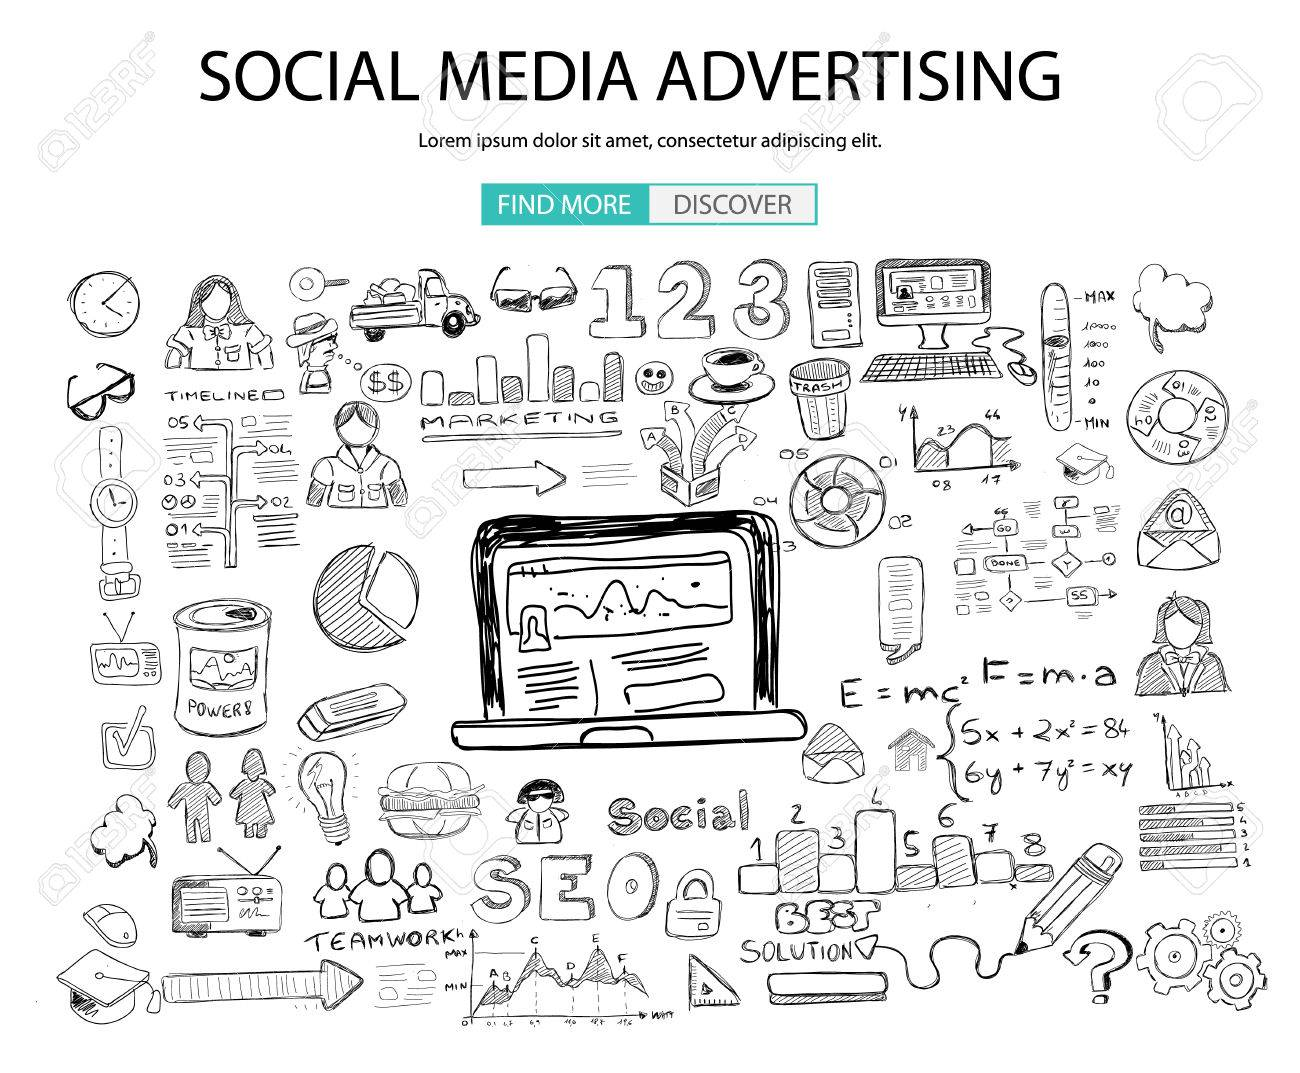 Social Media Advertising concept with Doodle design style: online solution, social media campain, creative ideas,Modern style illustration for web banners, brochure and flyers. - 54920702